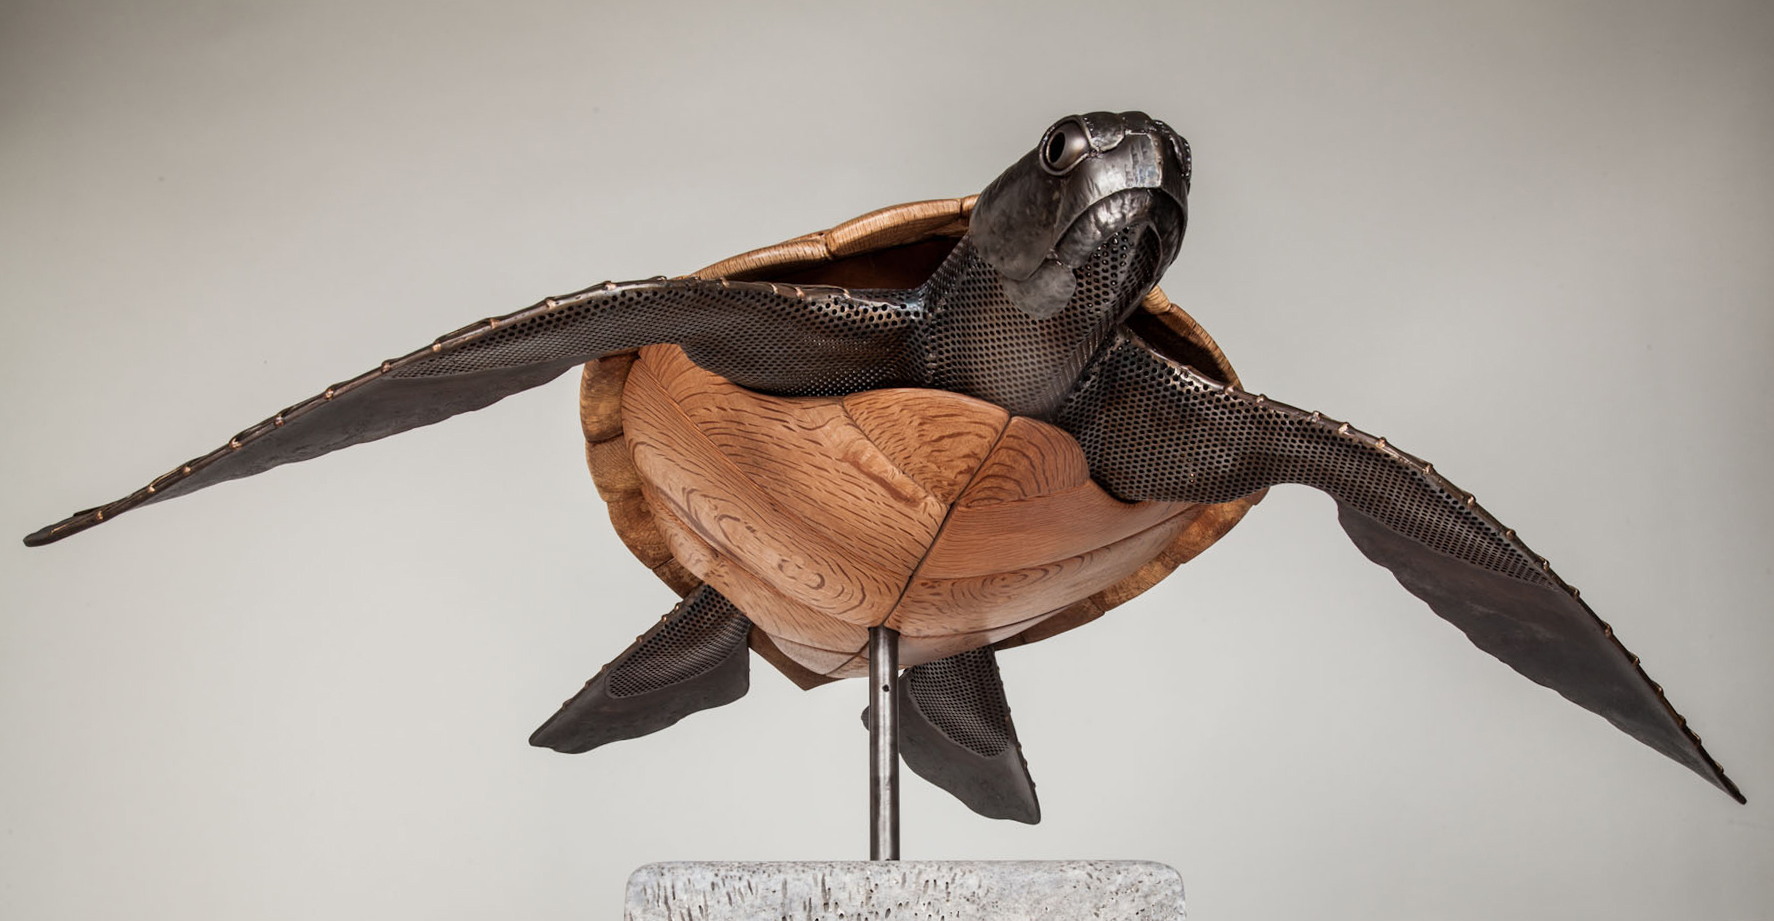 wood sculpture artist